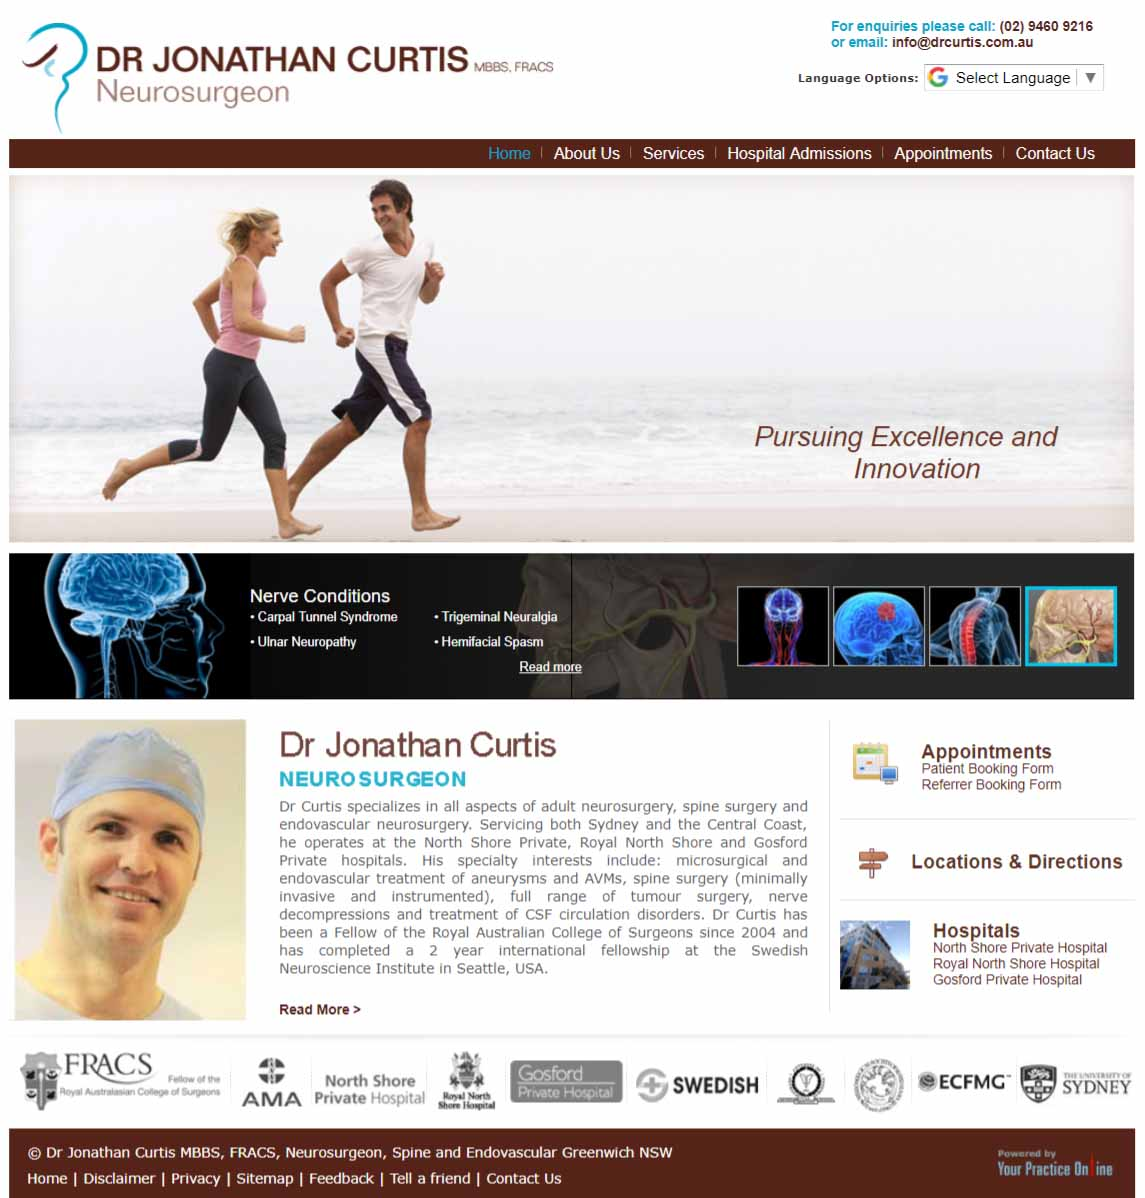 Sydney Neurosurgeon Website